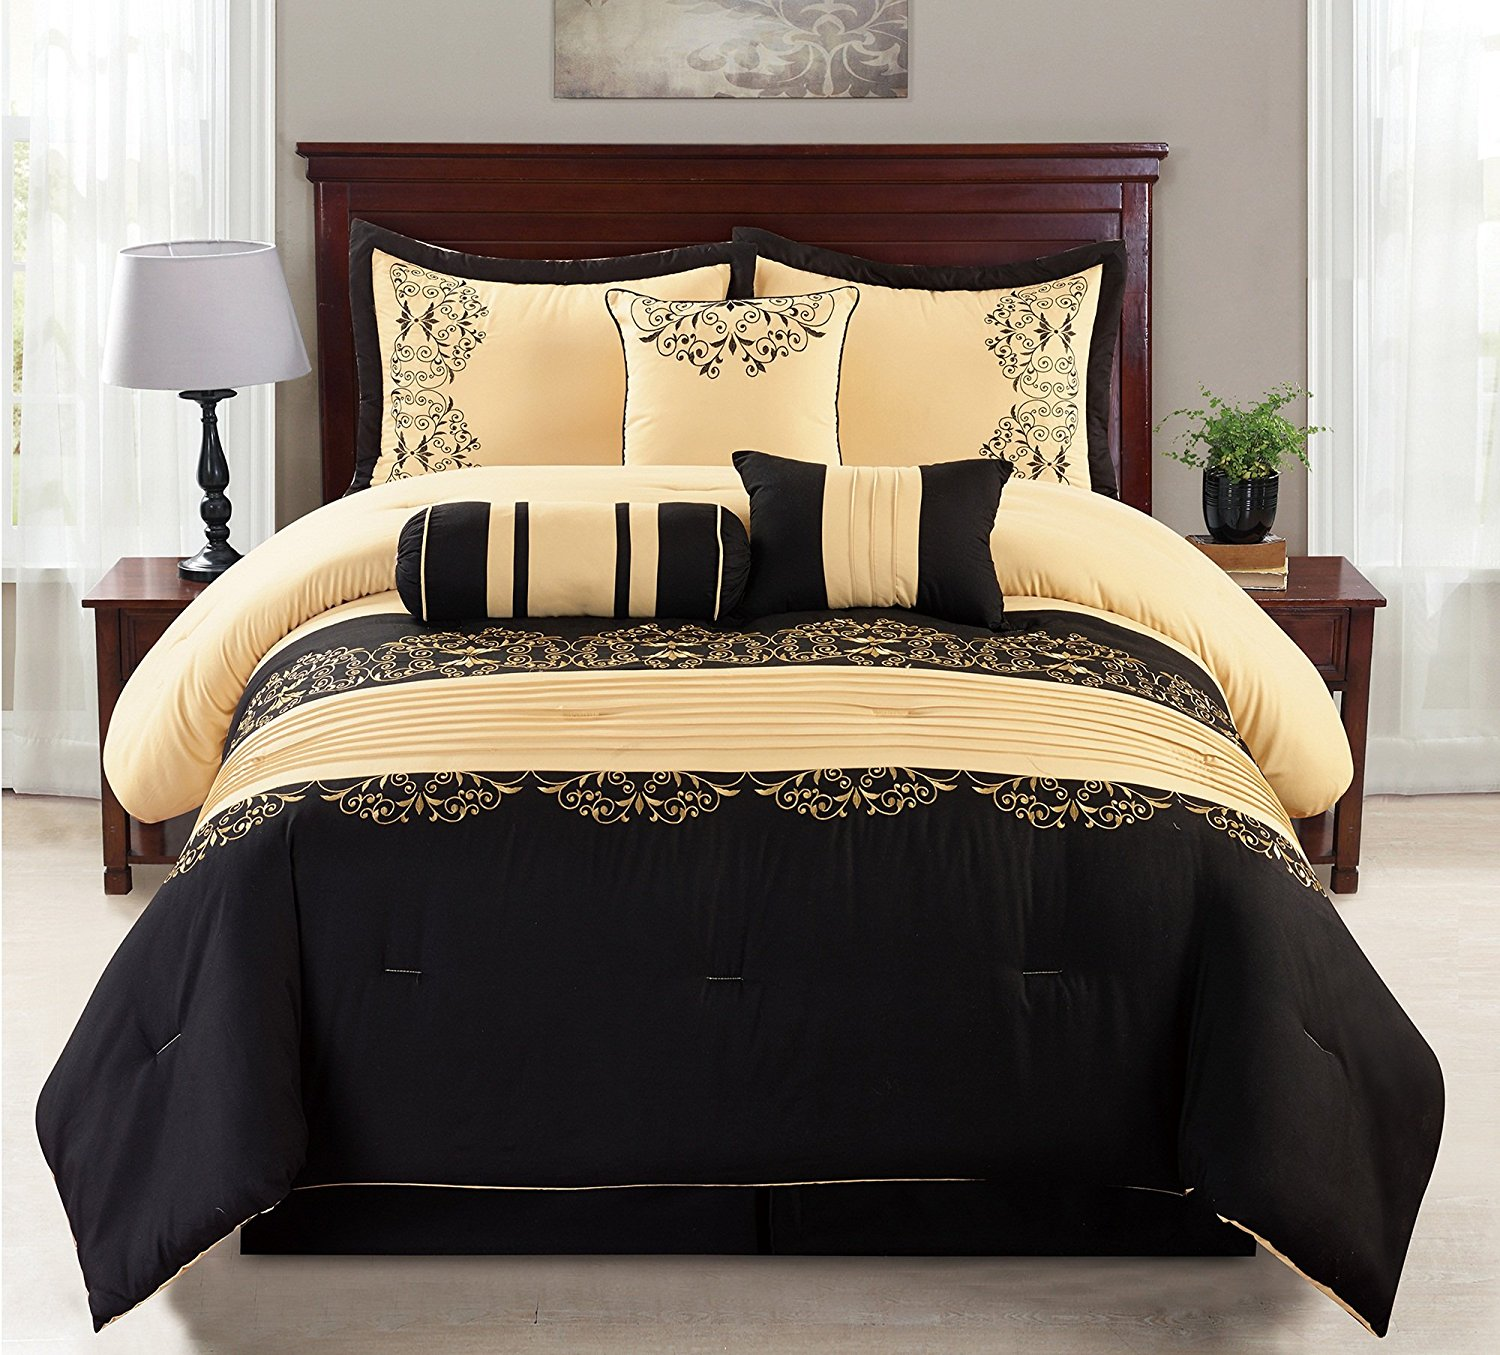 7 Piece Gold & Black Cotton Touch Oversized Embroidered Comforter Set - King Size